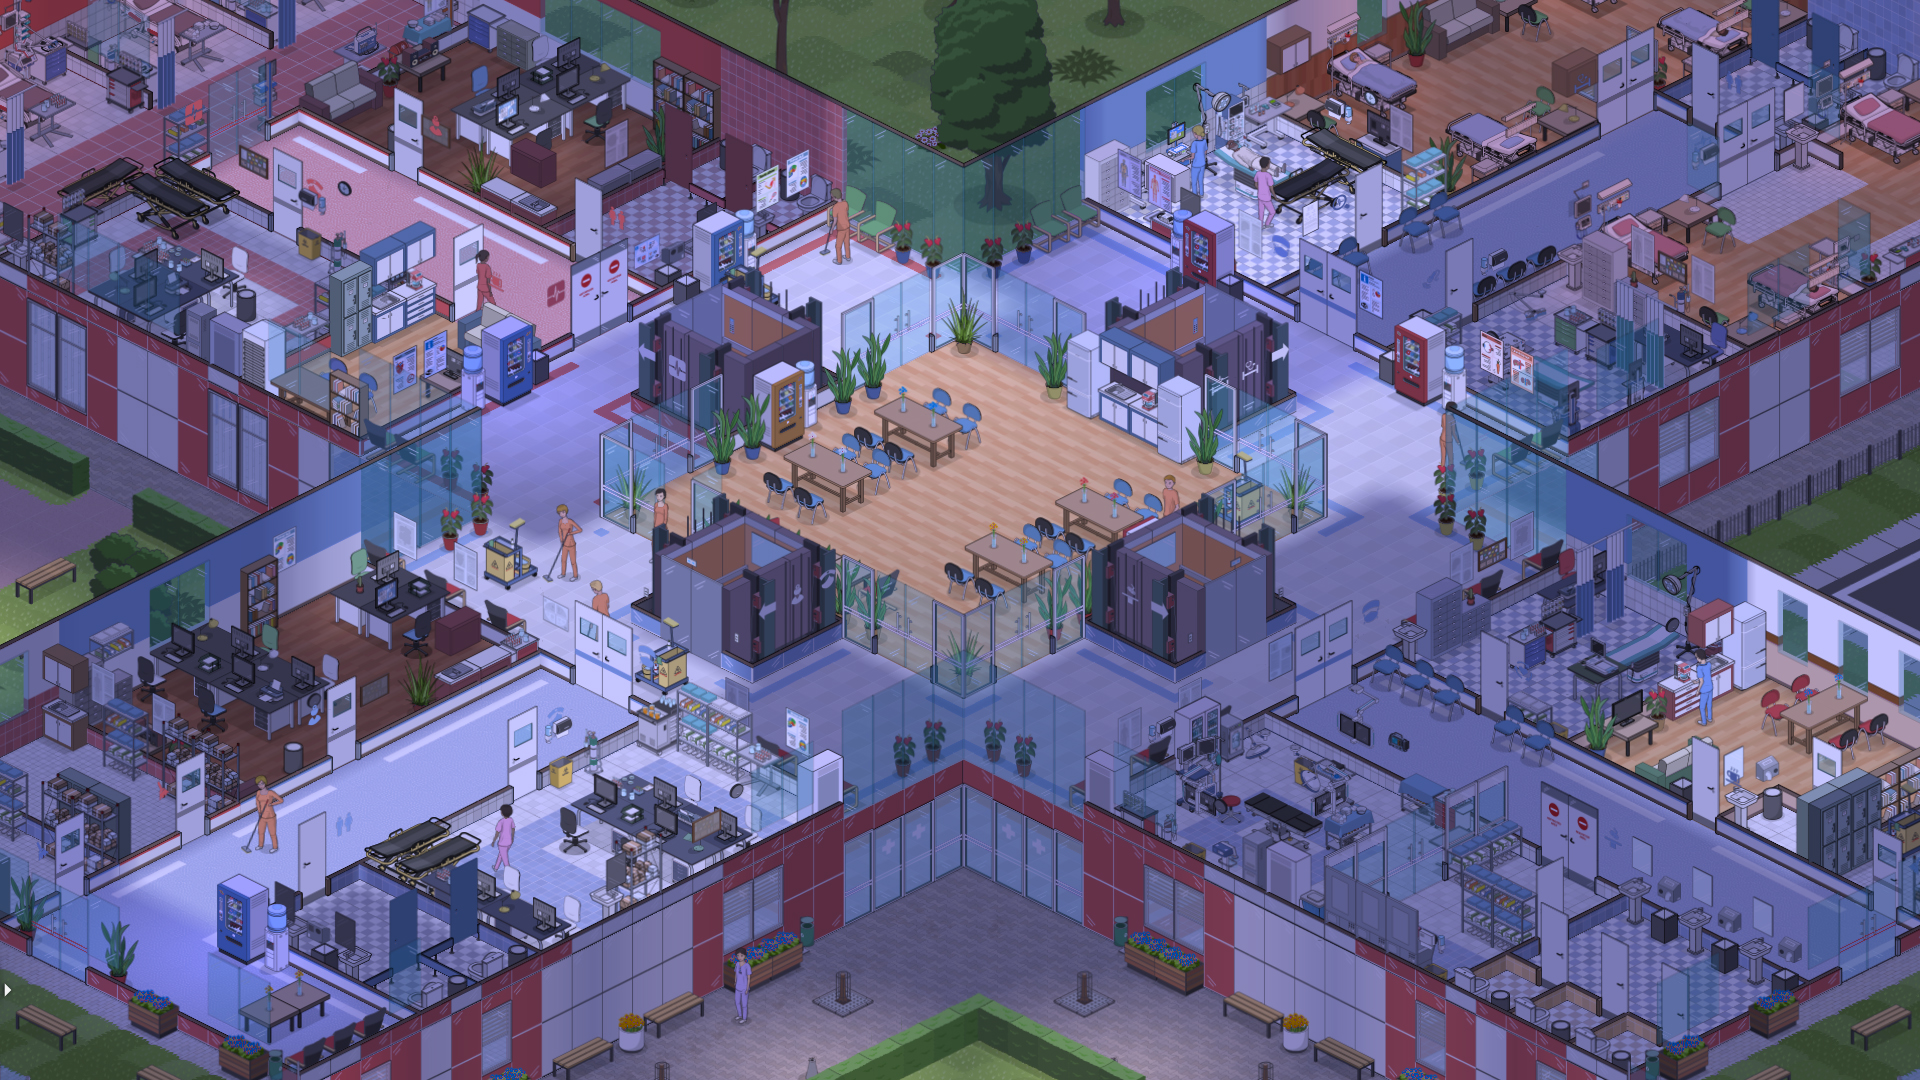 Project Hospital' is A Great Way to Understand Our Broken Healthcare